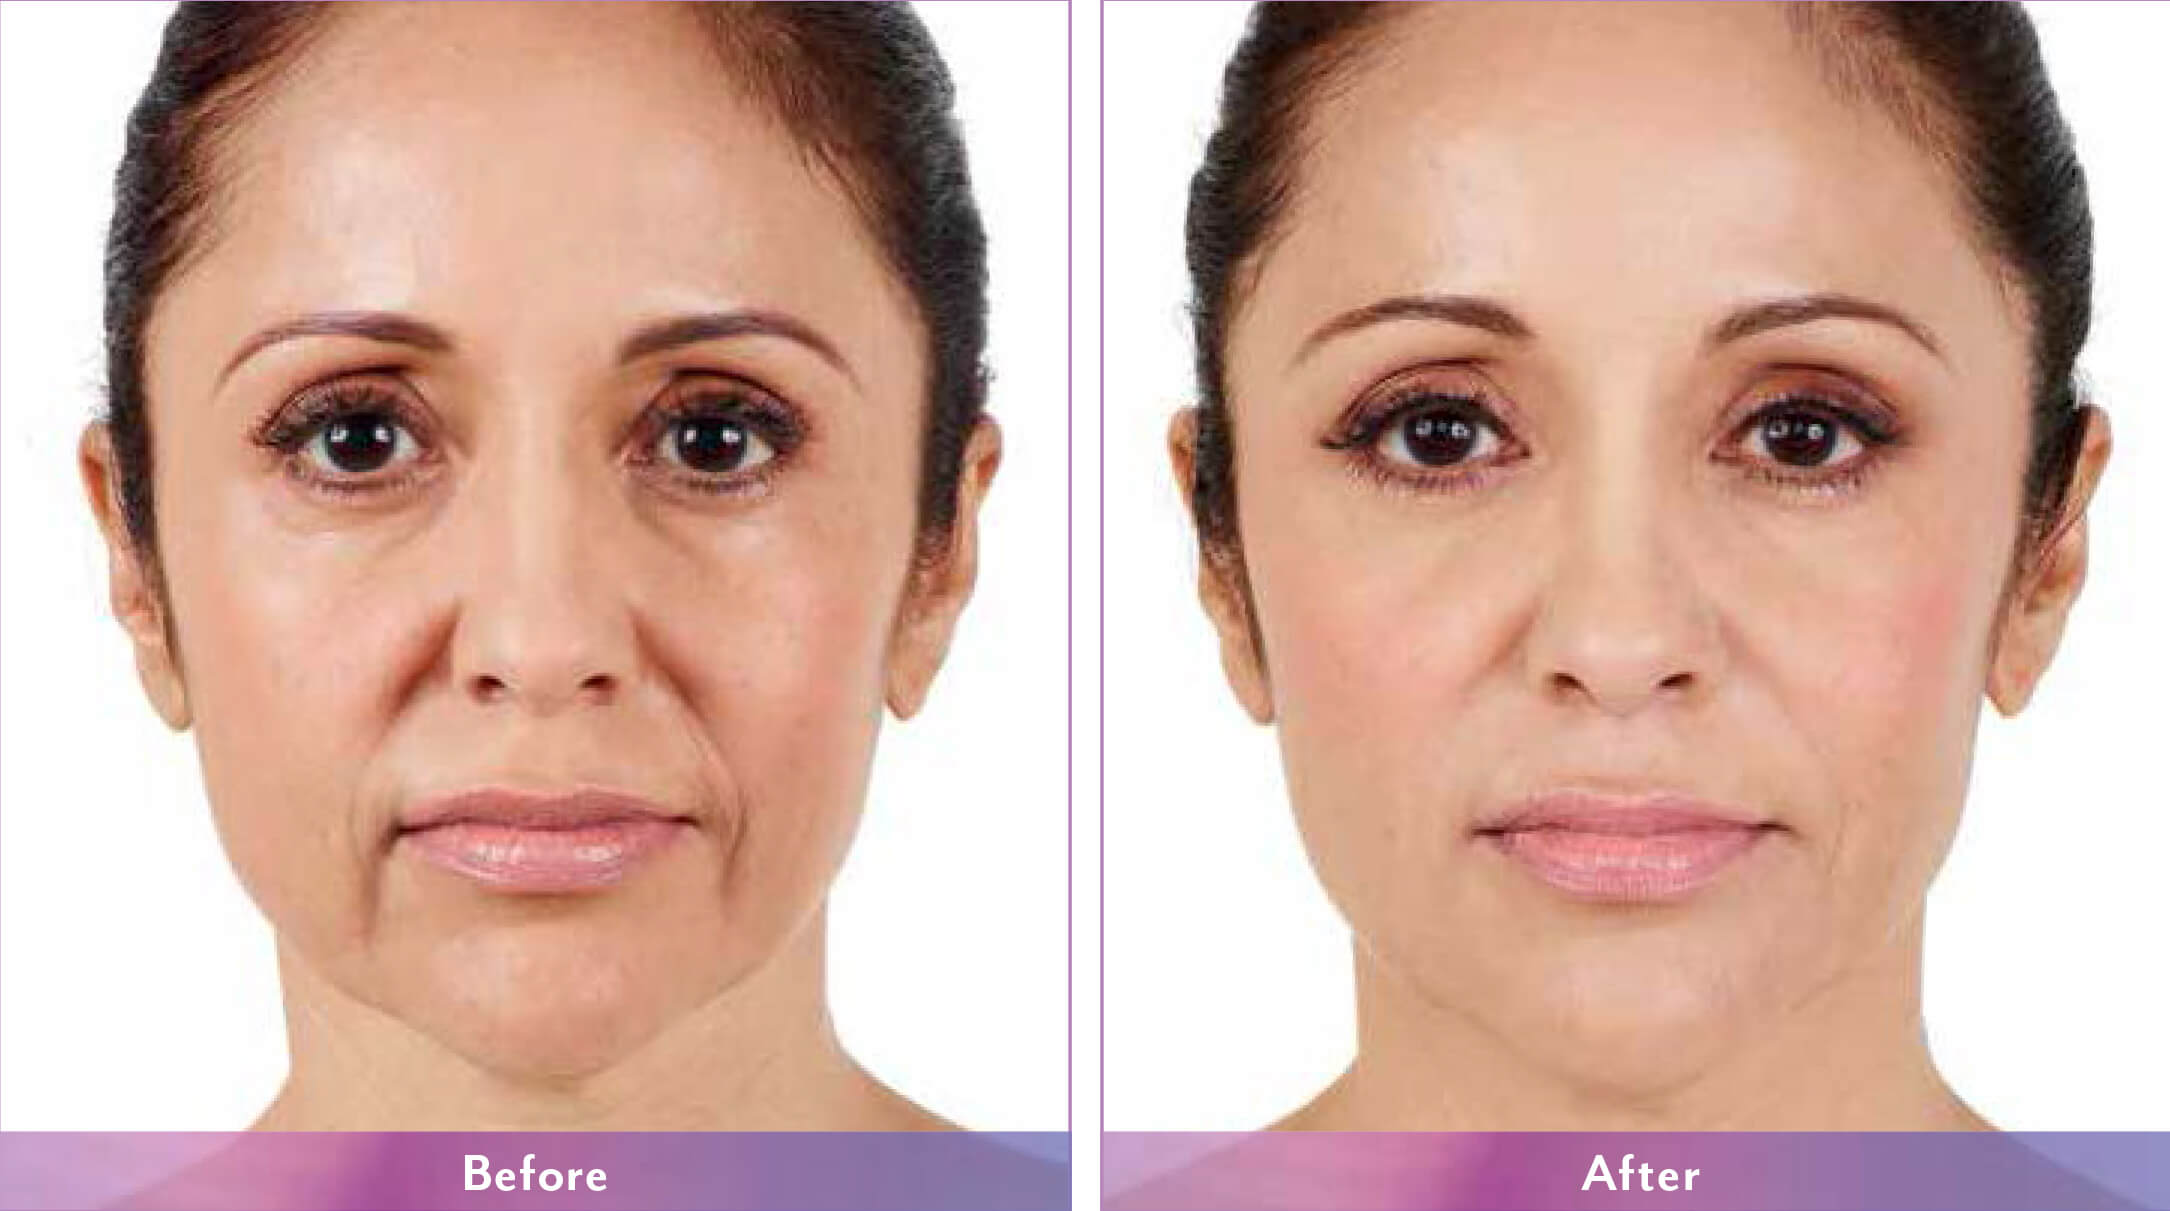 Before After Juvederm Treatment